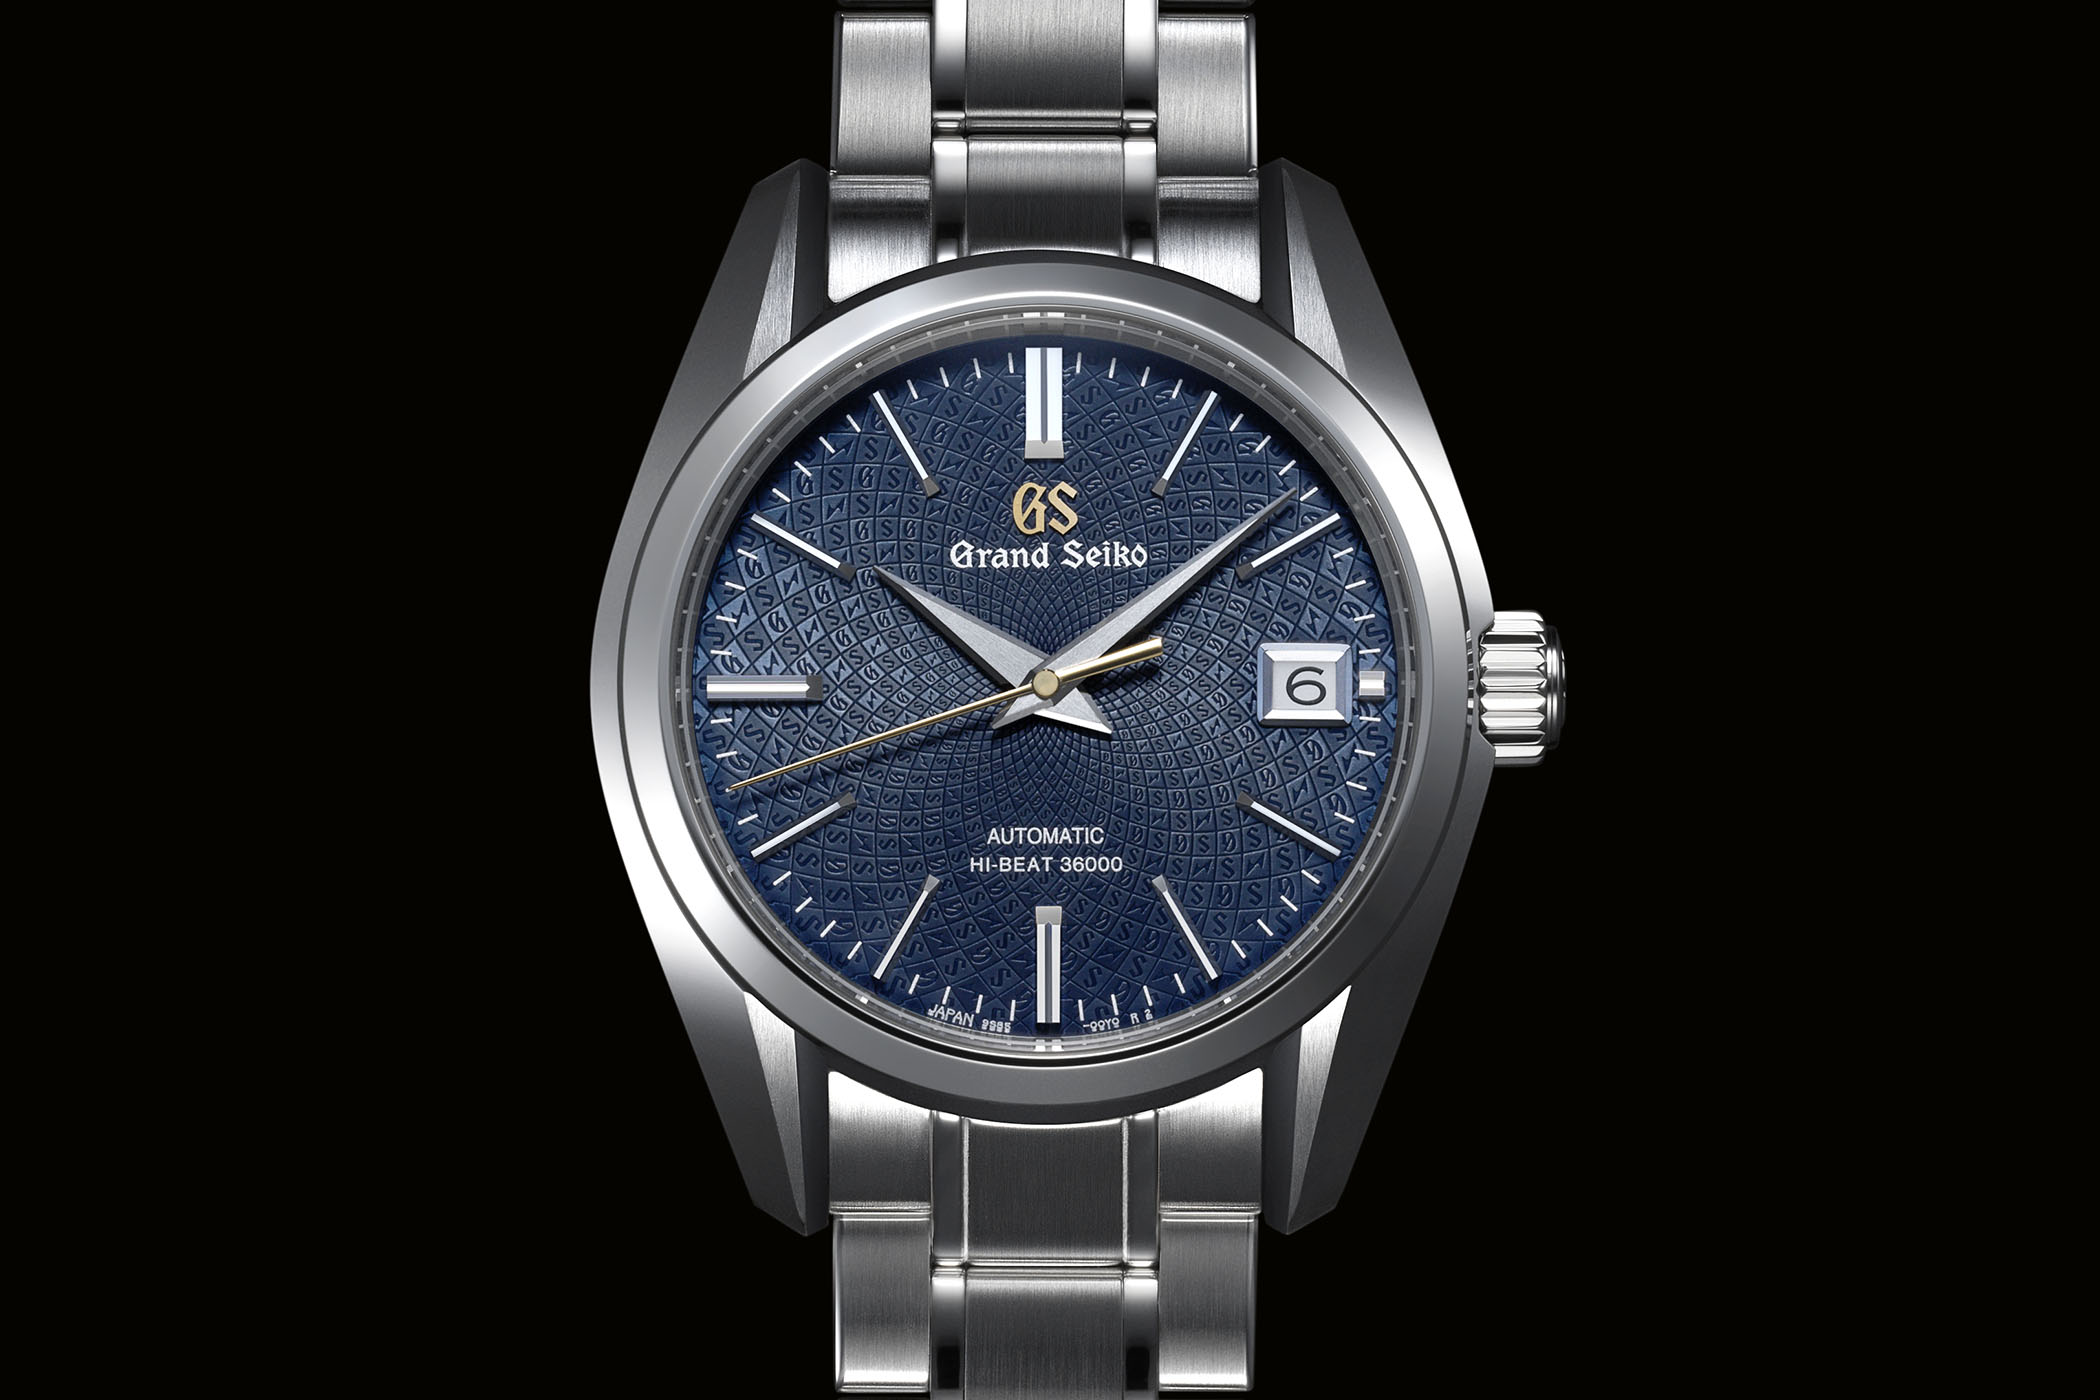 Grand Seiko Caliber 9S 20th Anniversary - Baselworld 2018 - SBGH267